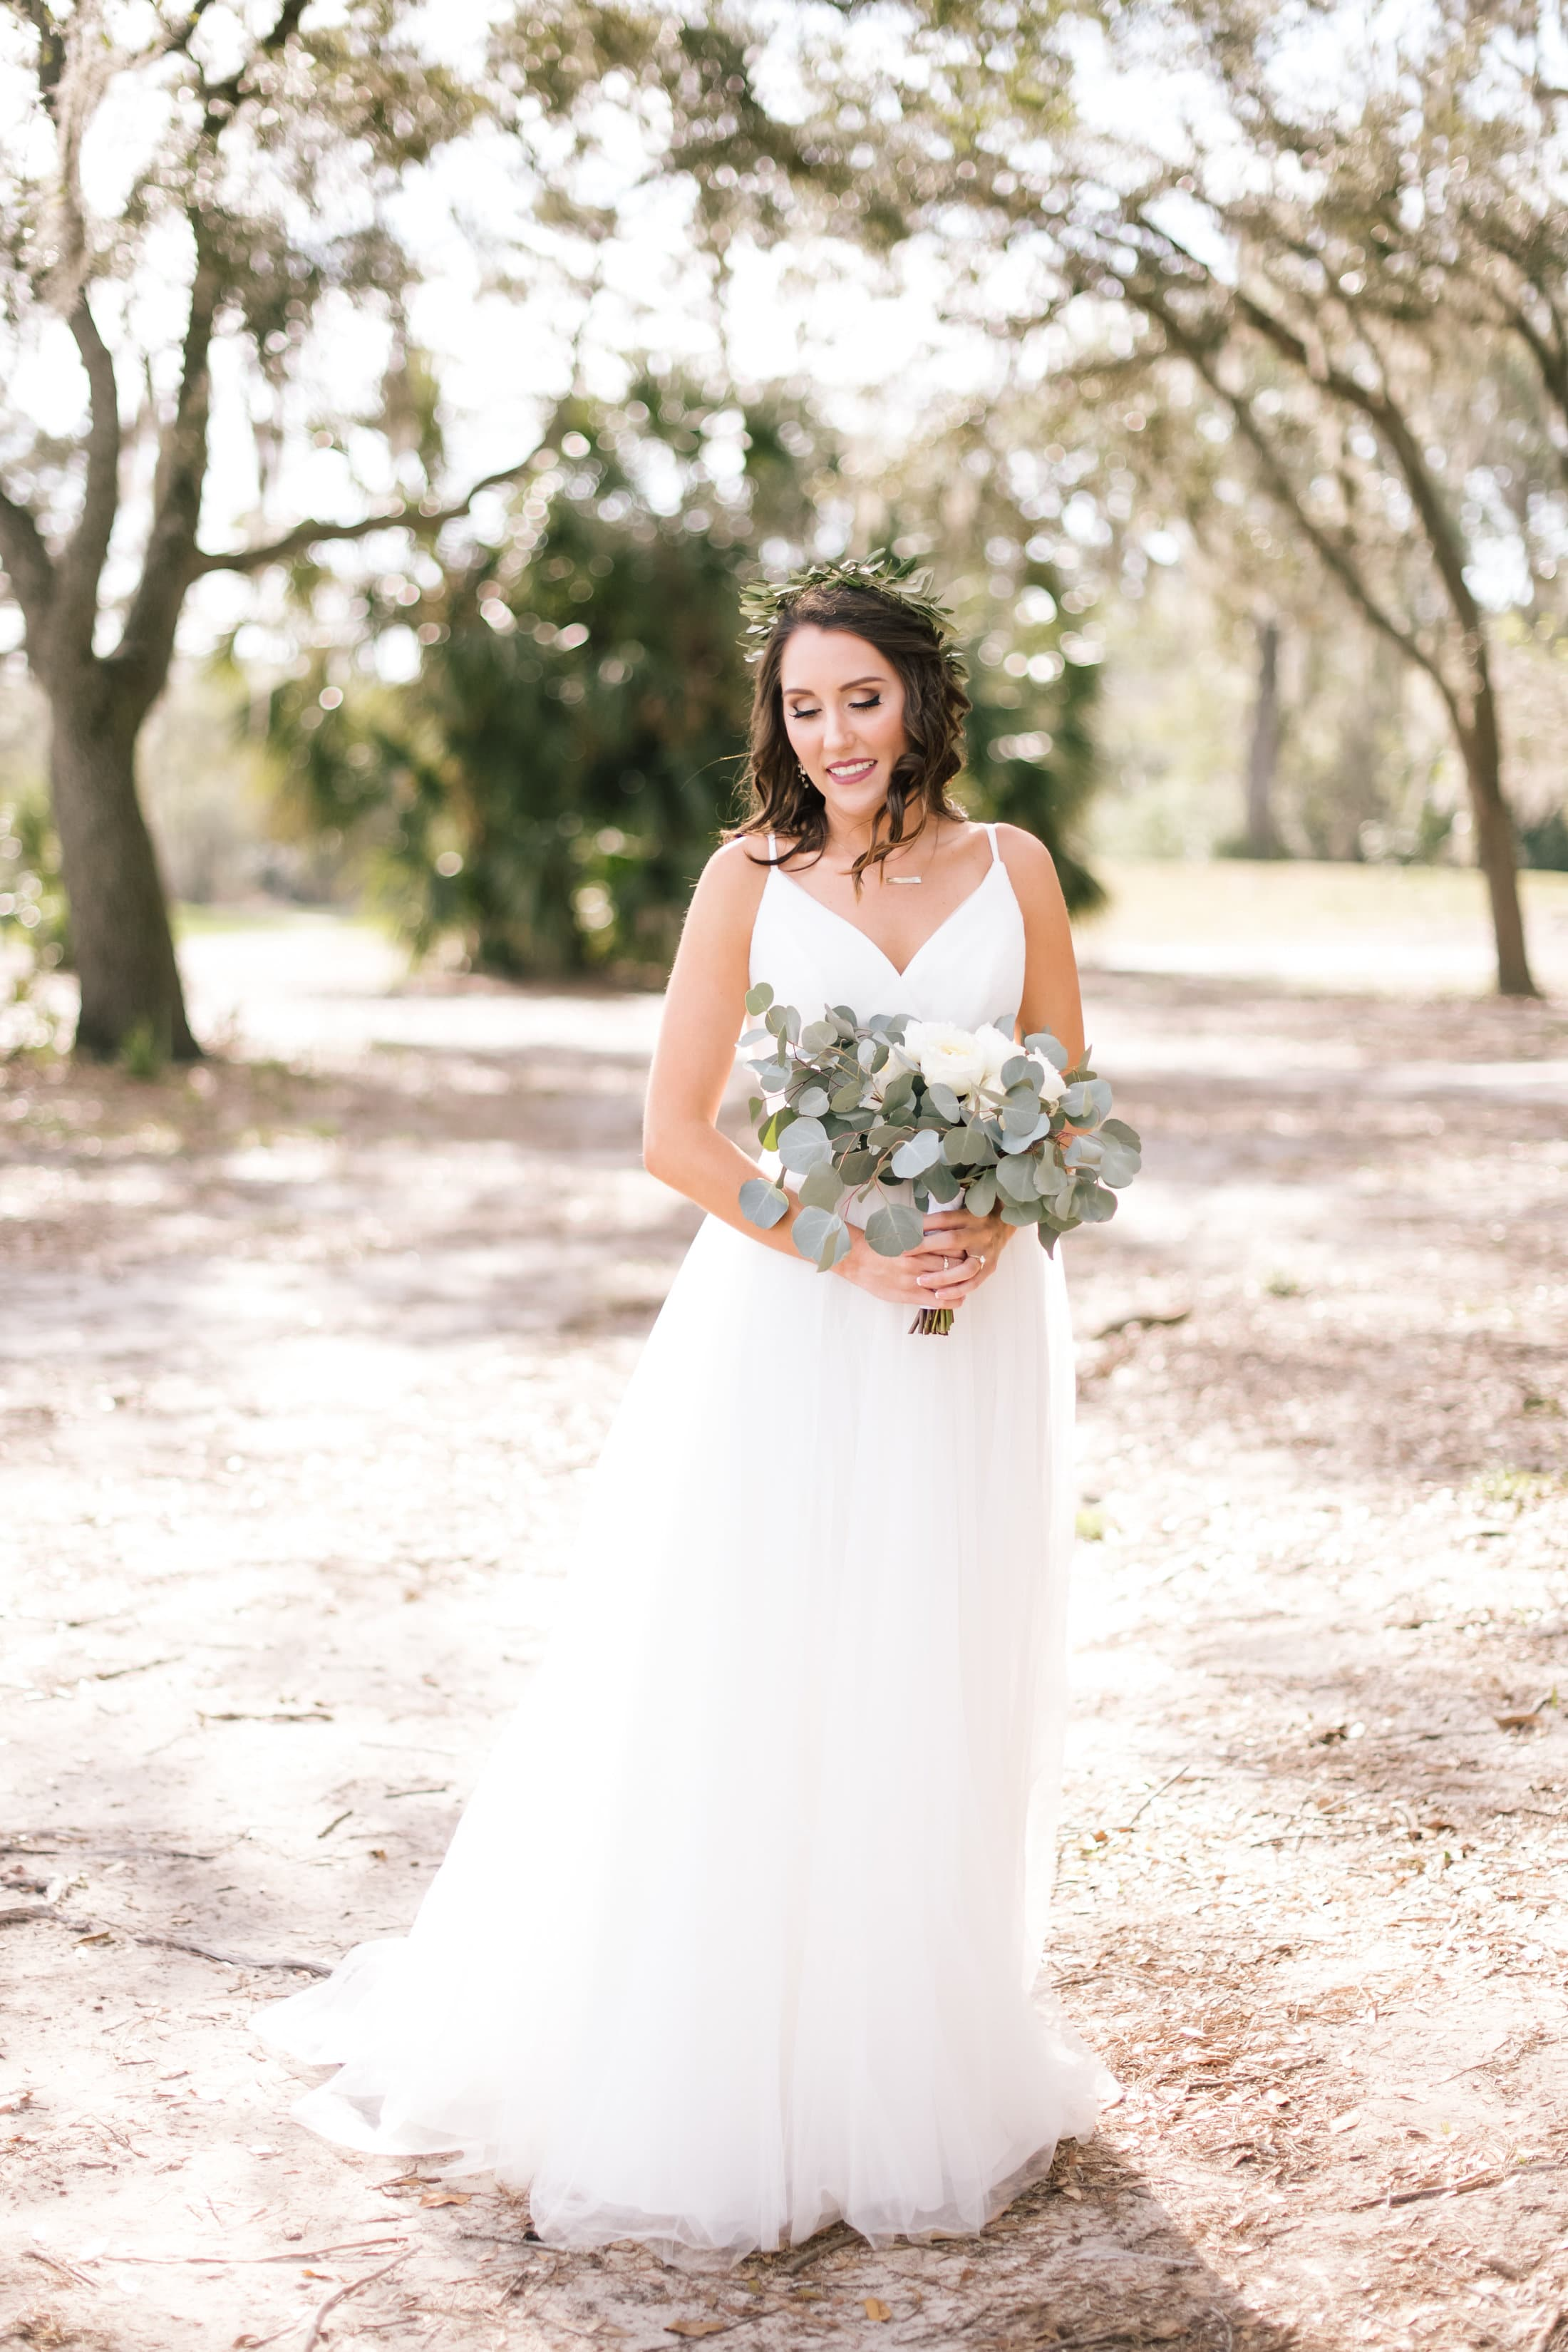 Bride Holding a White Whimsical Winter Wedding Bouquet